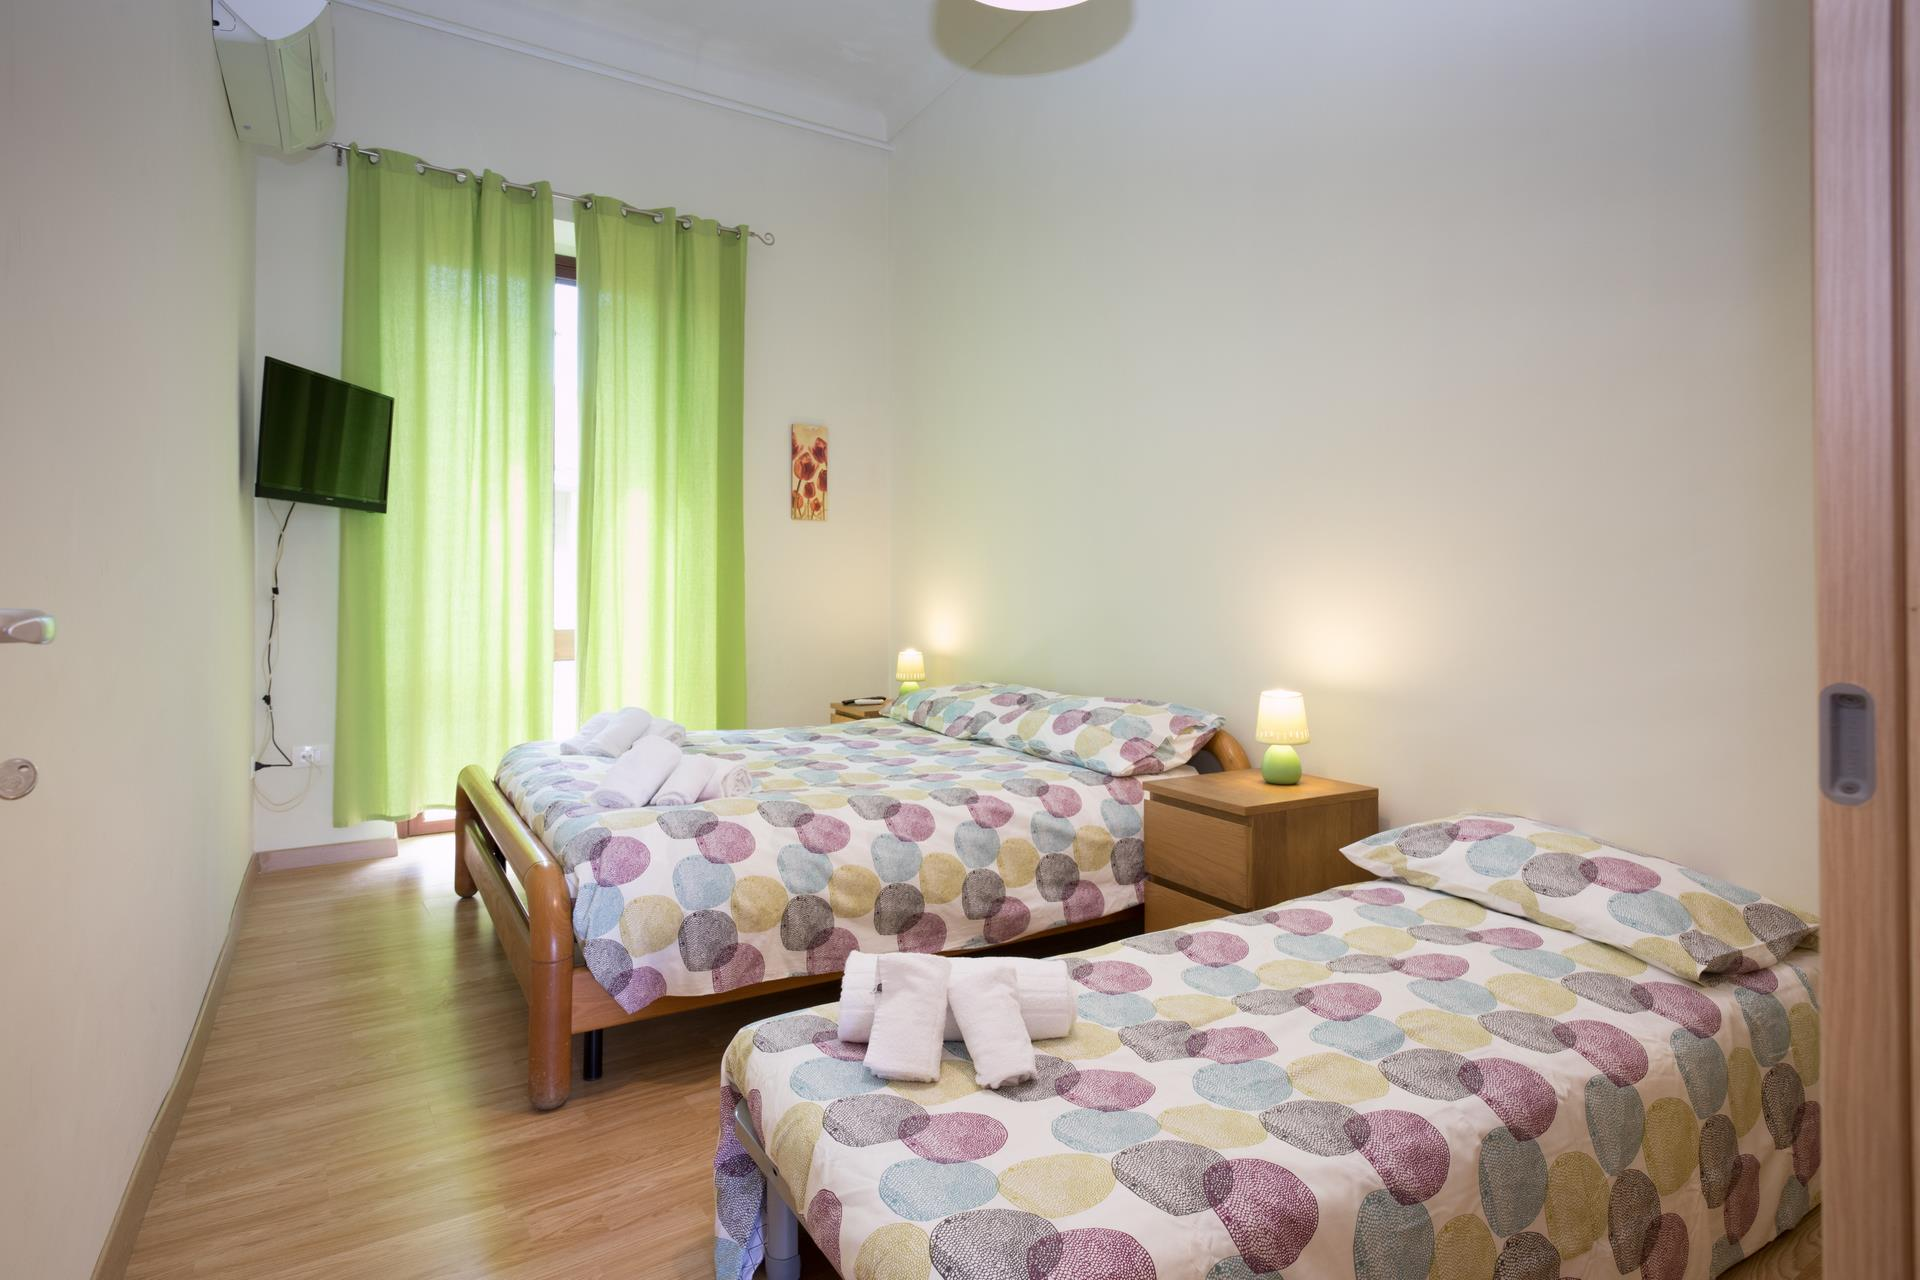 Apartment Apt E - Wellness House Galilei 9 sleeps photo 18685032